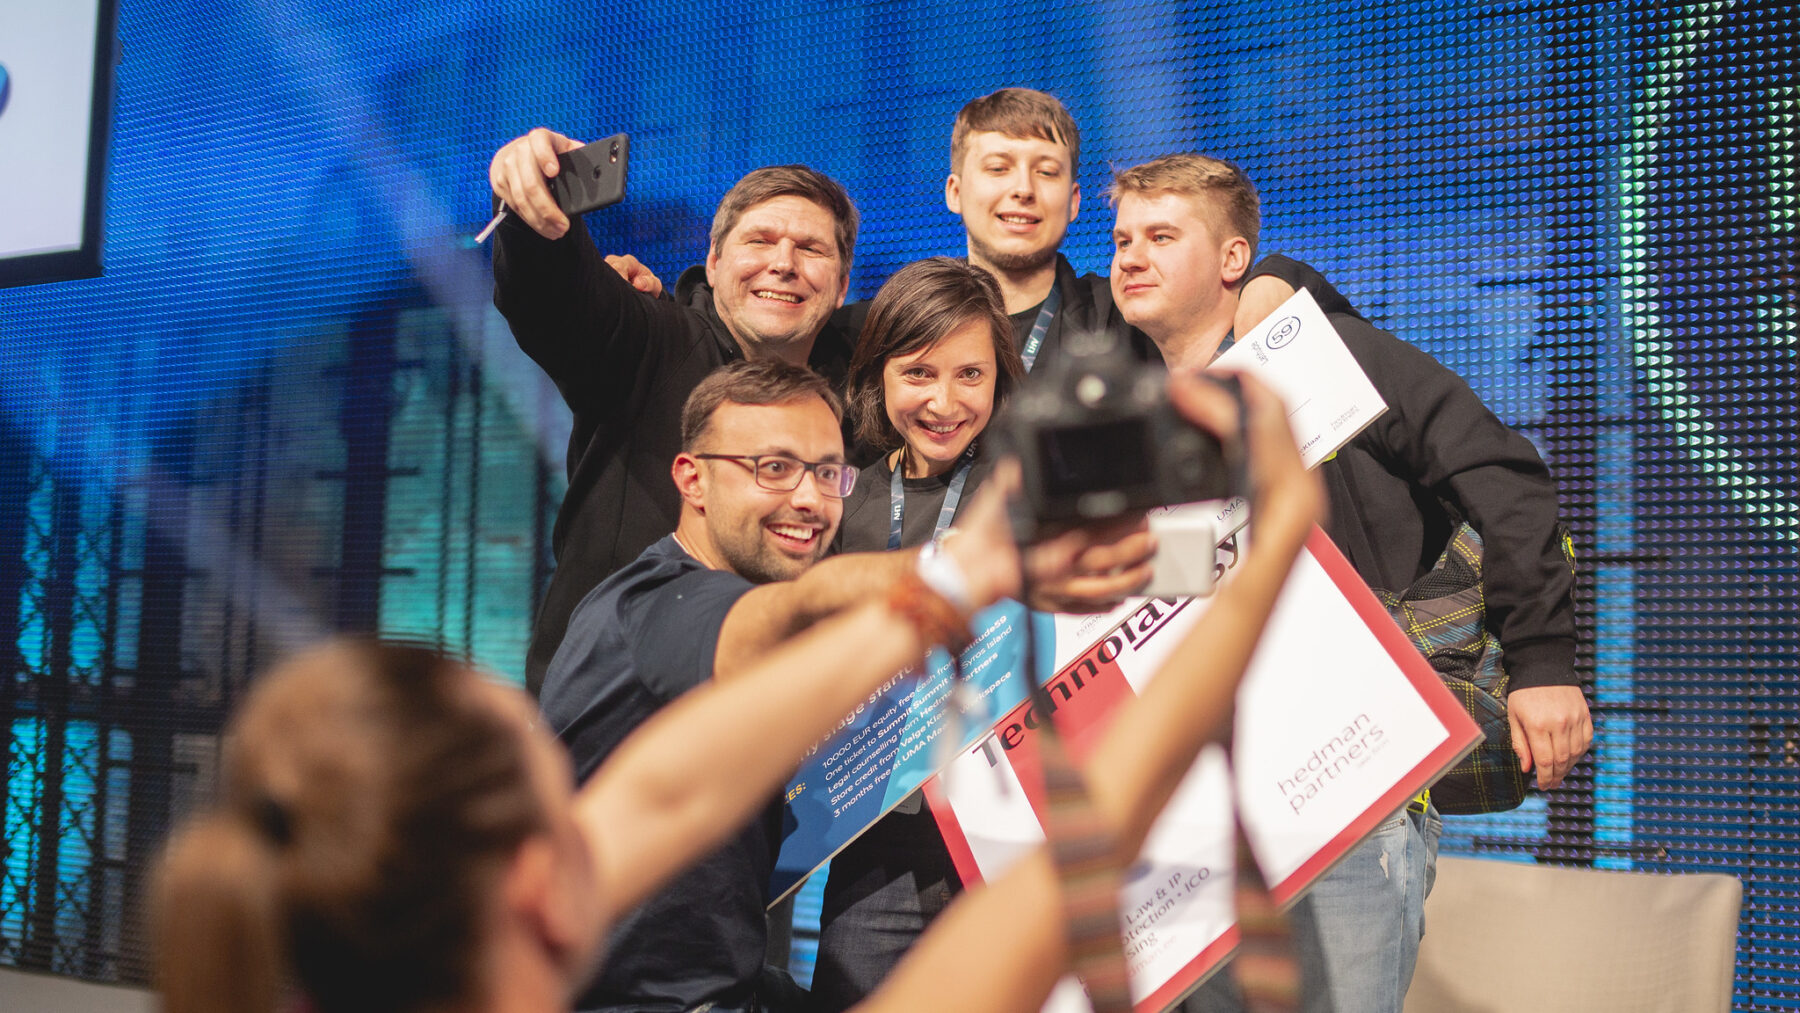 Startups – take your chance and stand out at Latitude59